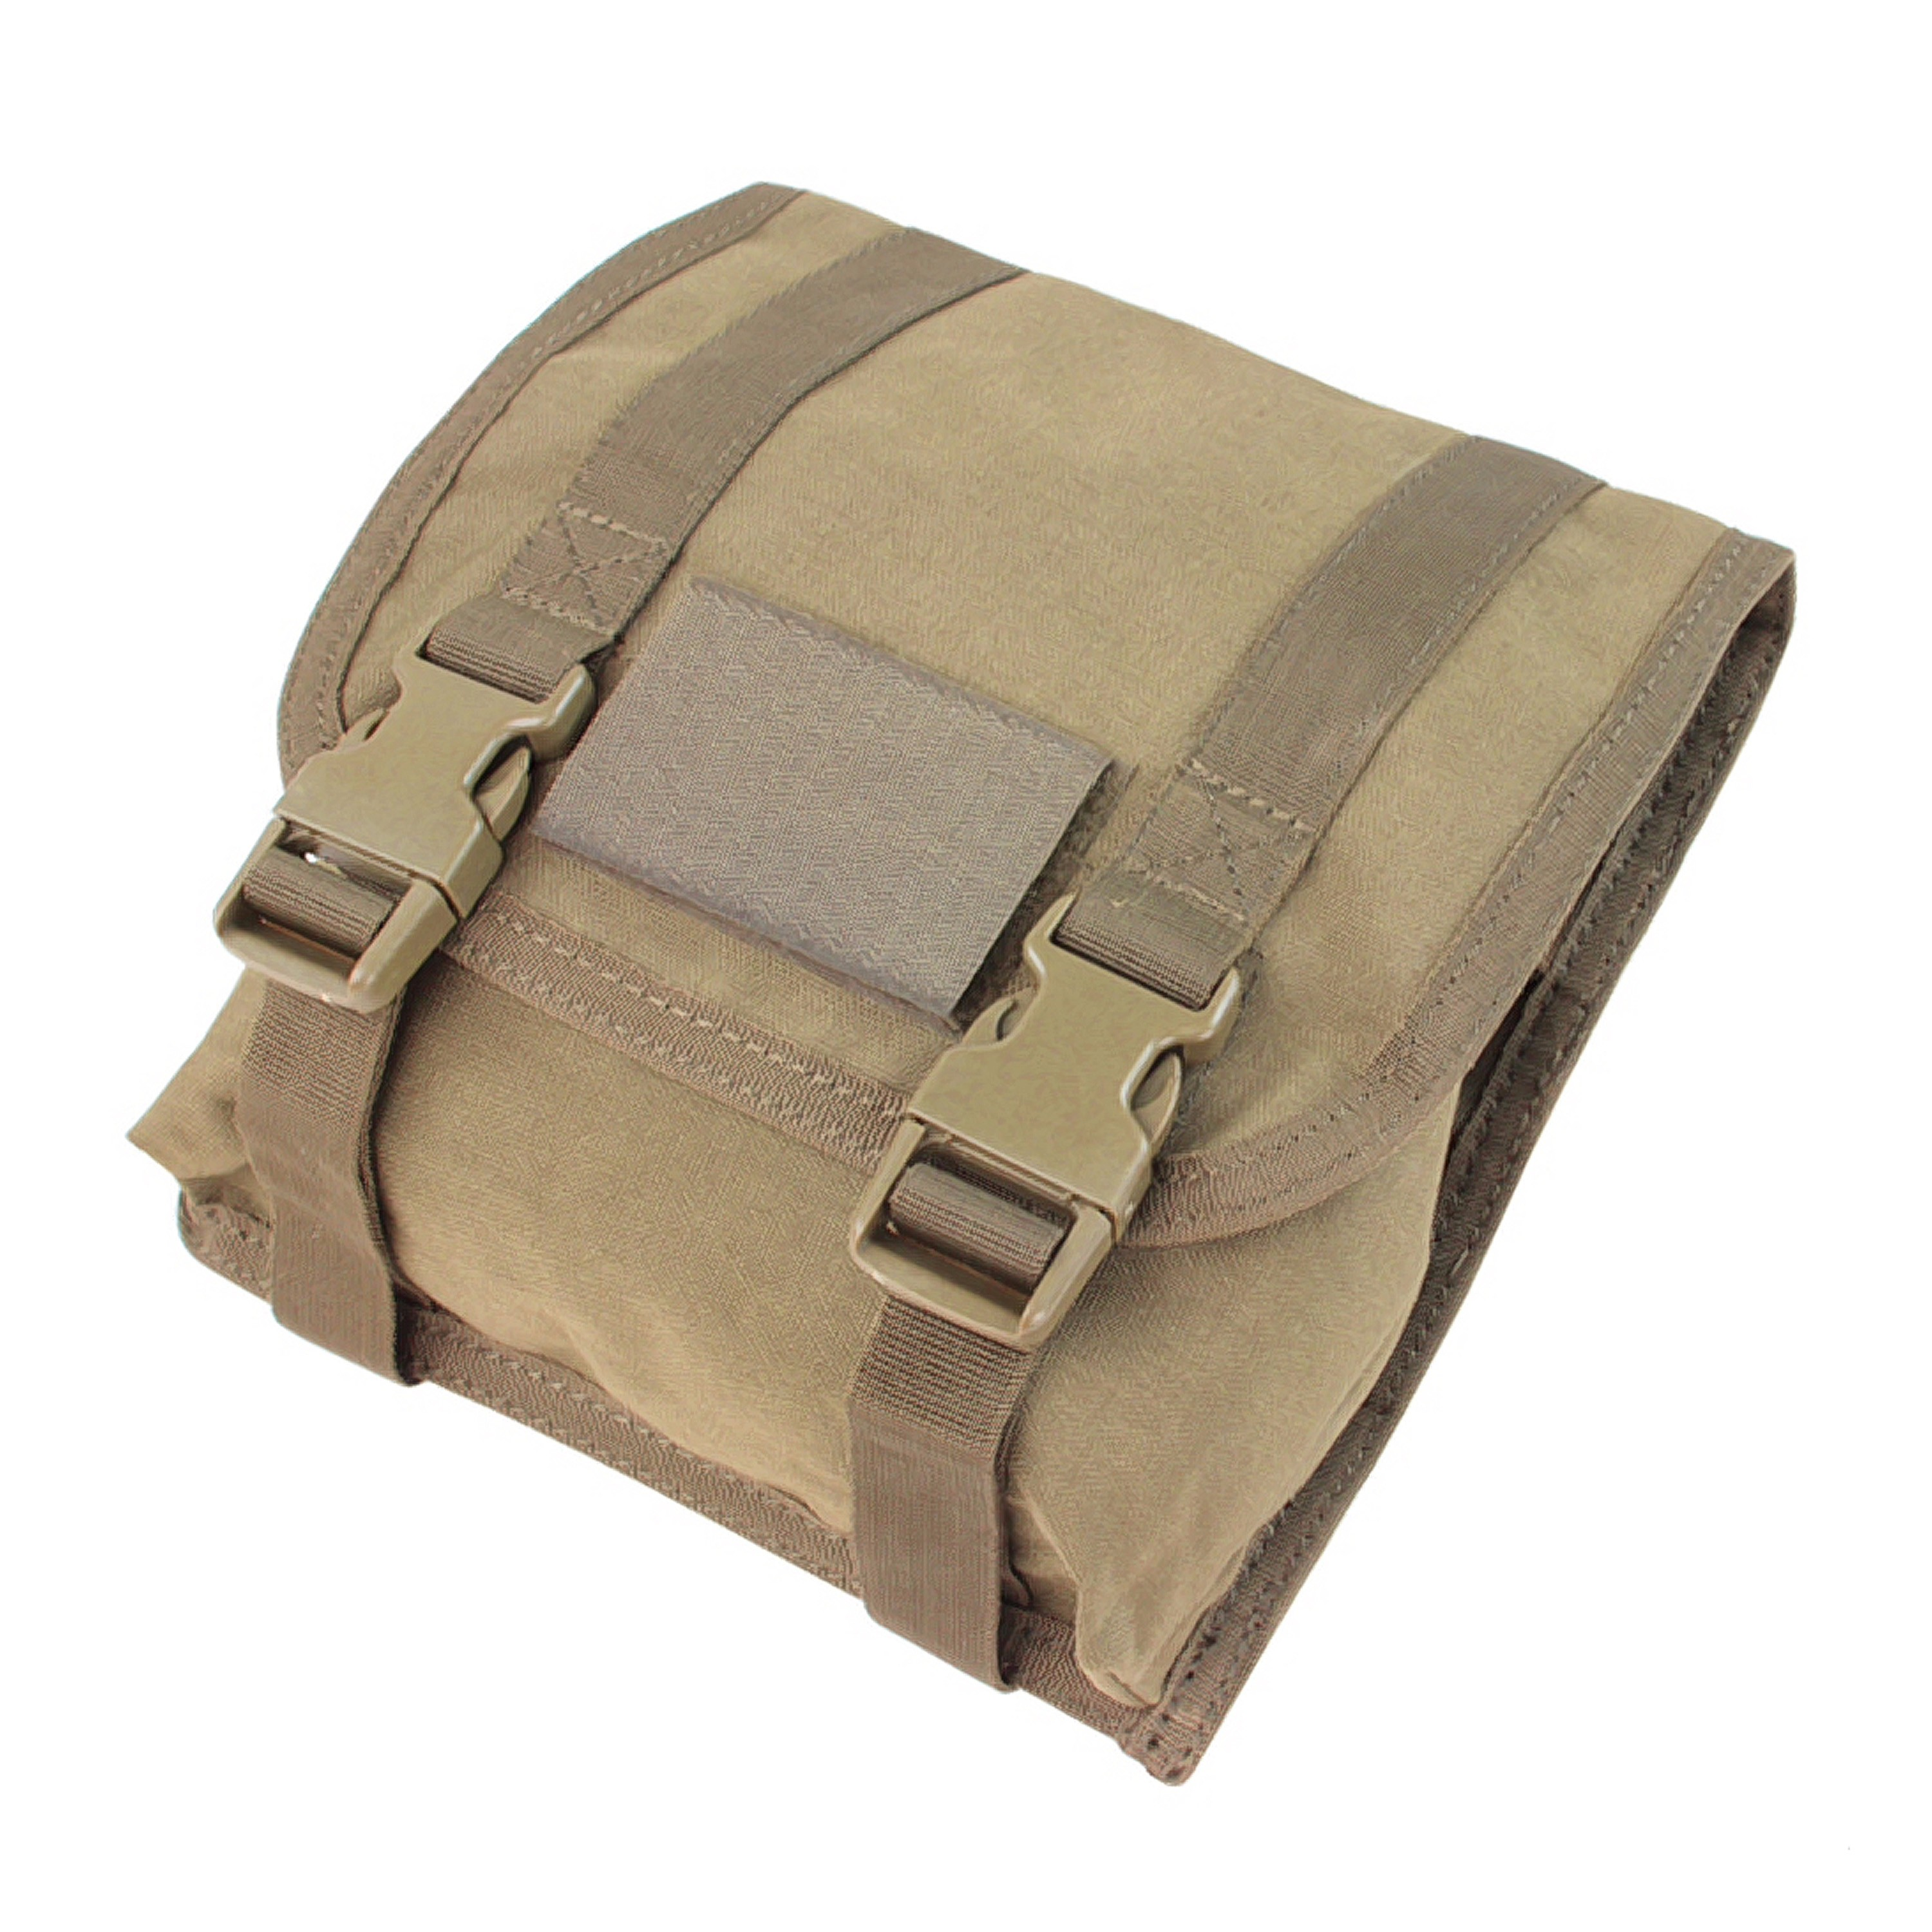 Condor Large Utility Pouch tan